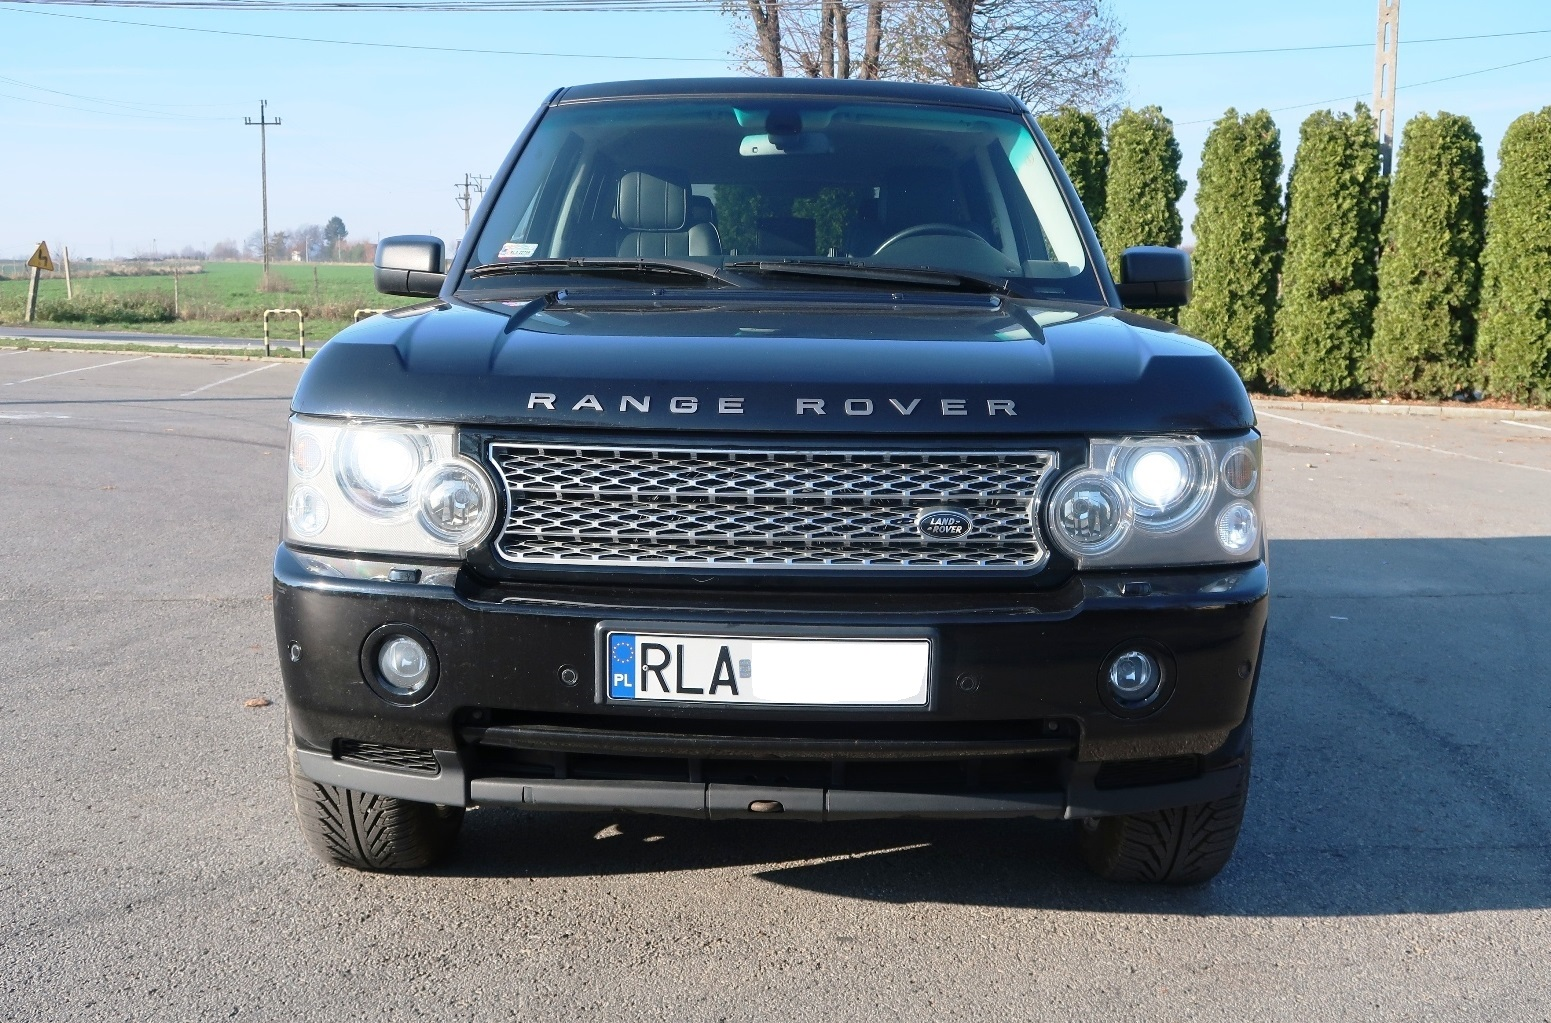 Range Rover Vogue 3.6TDV8 272HP -> 327HP 810Nm